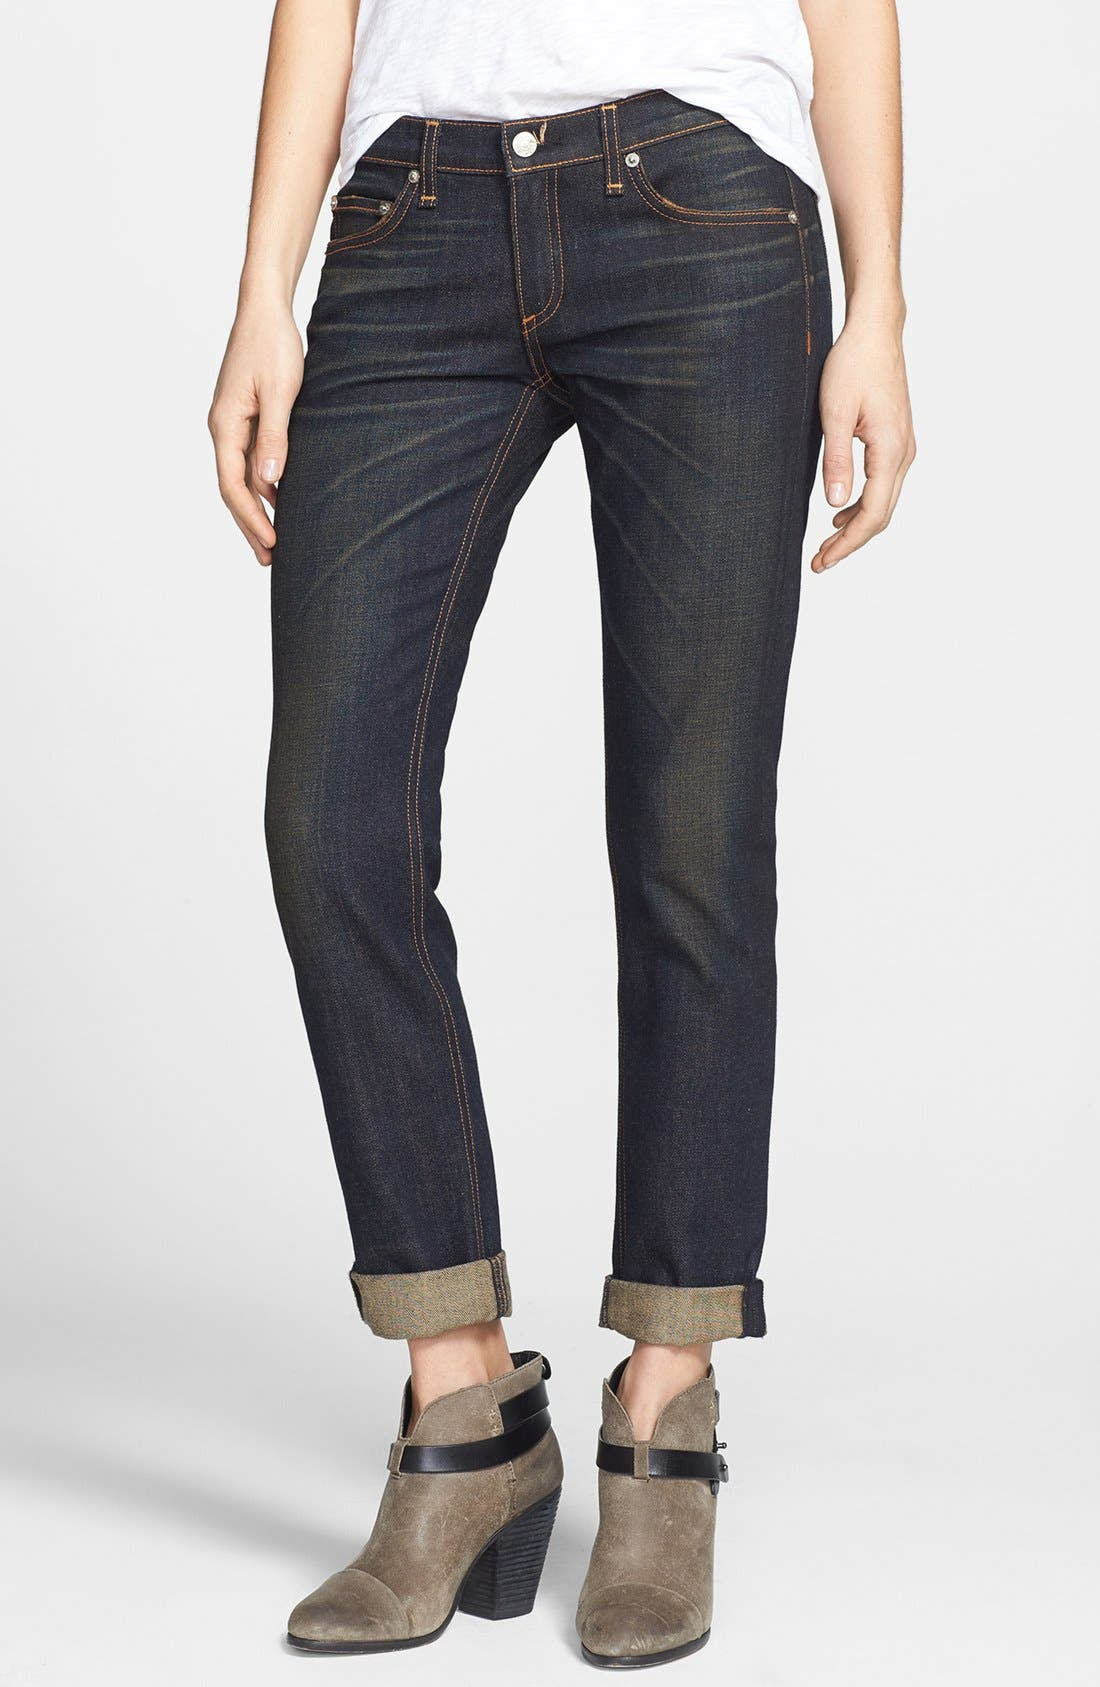 Main Image - rag & bone/JEAN 'The Dre' Slim Fit Boyfriend Jeans (Charing)